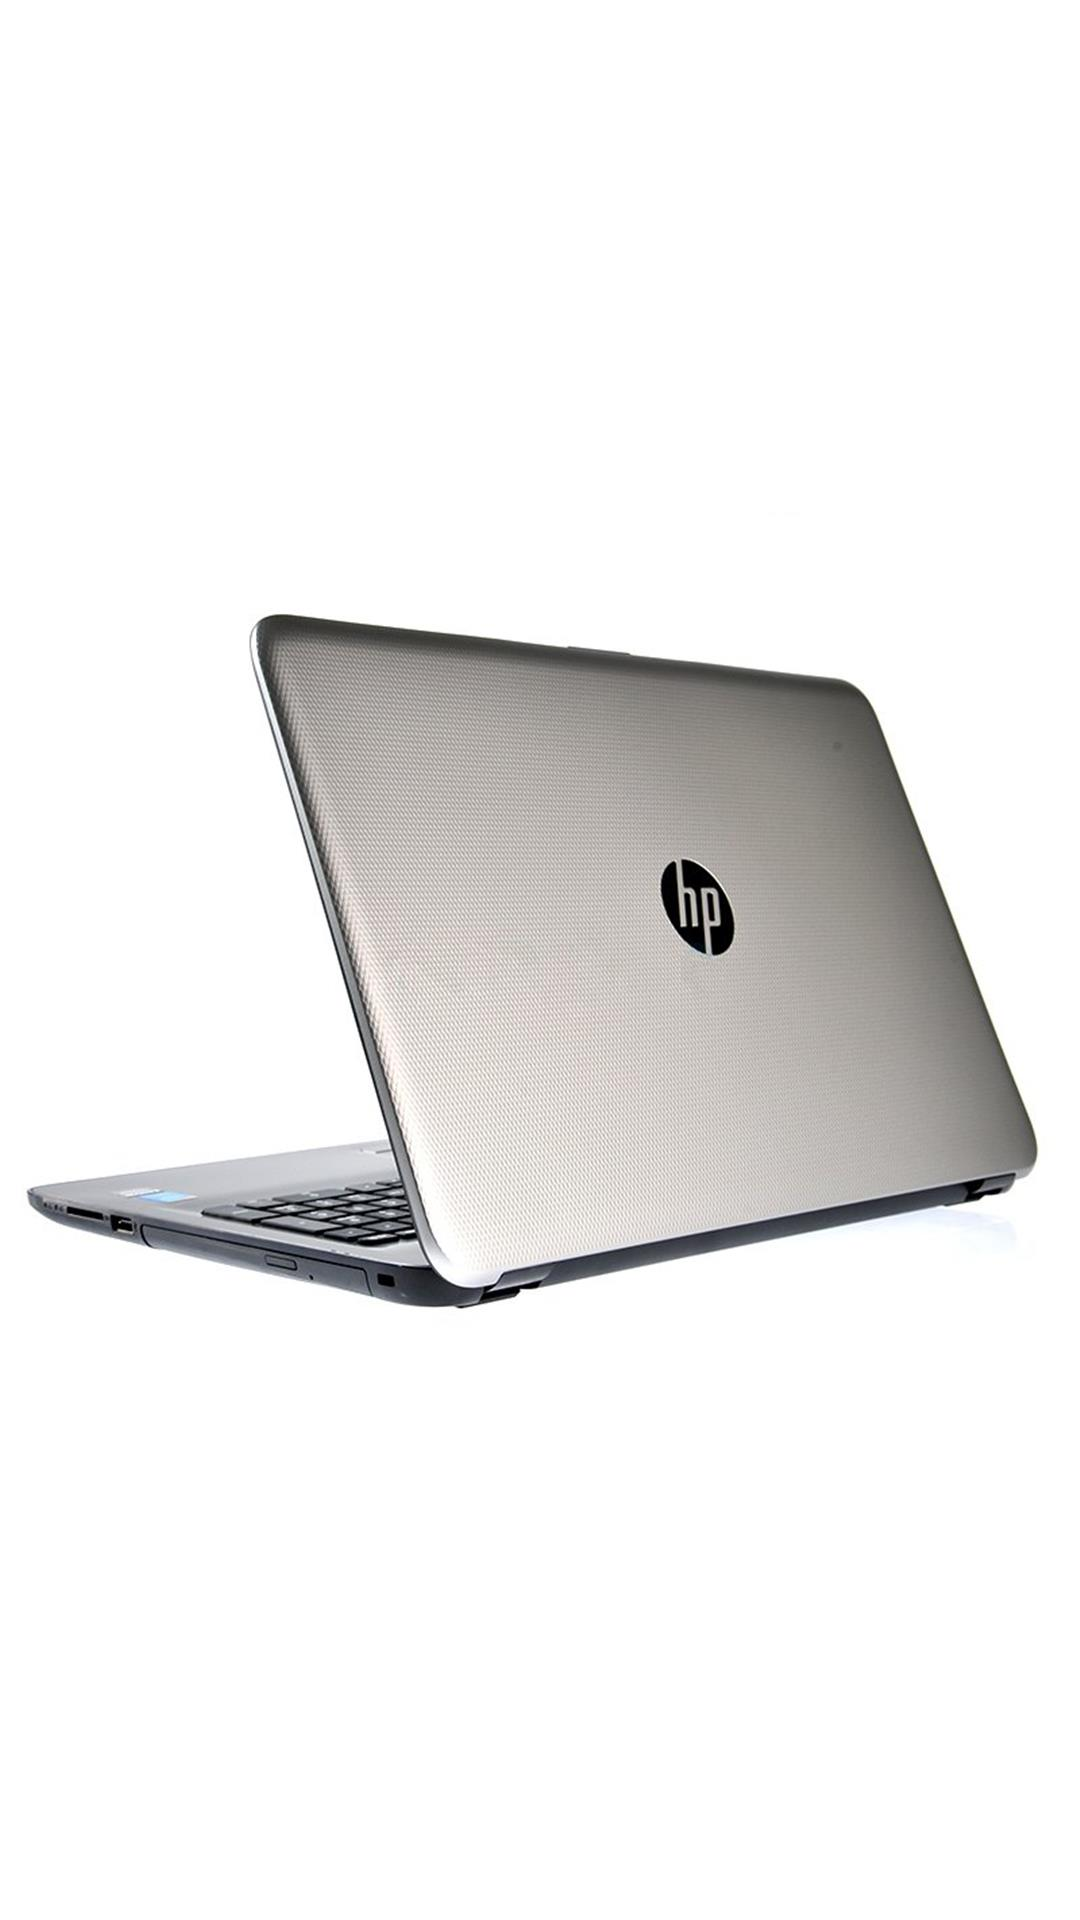 HP 15-ac671TX (Core i7 (4th Gen)/4GB/500GB/39.62 cm (15.6)/Window 10/2GB) (Silver)